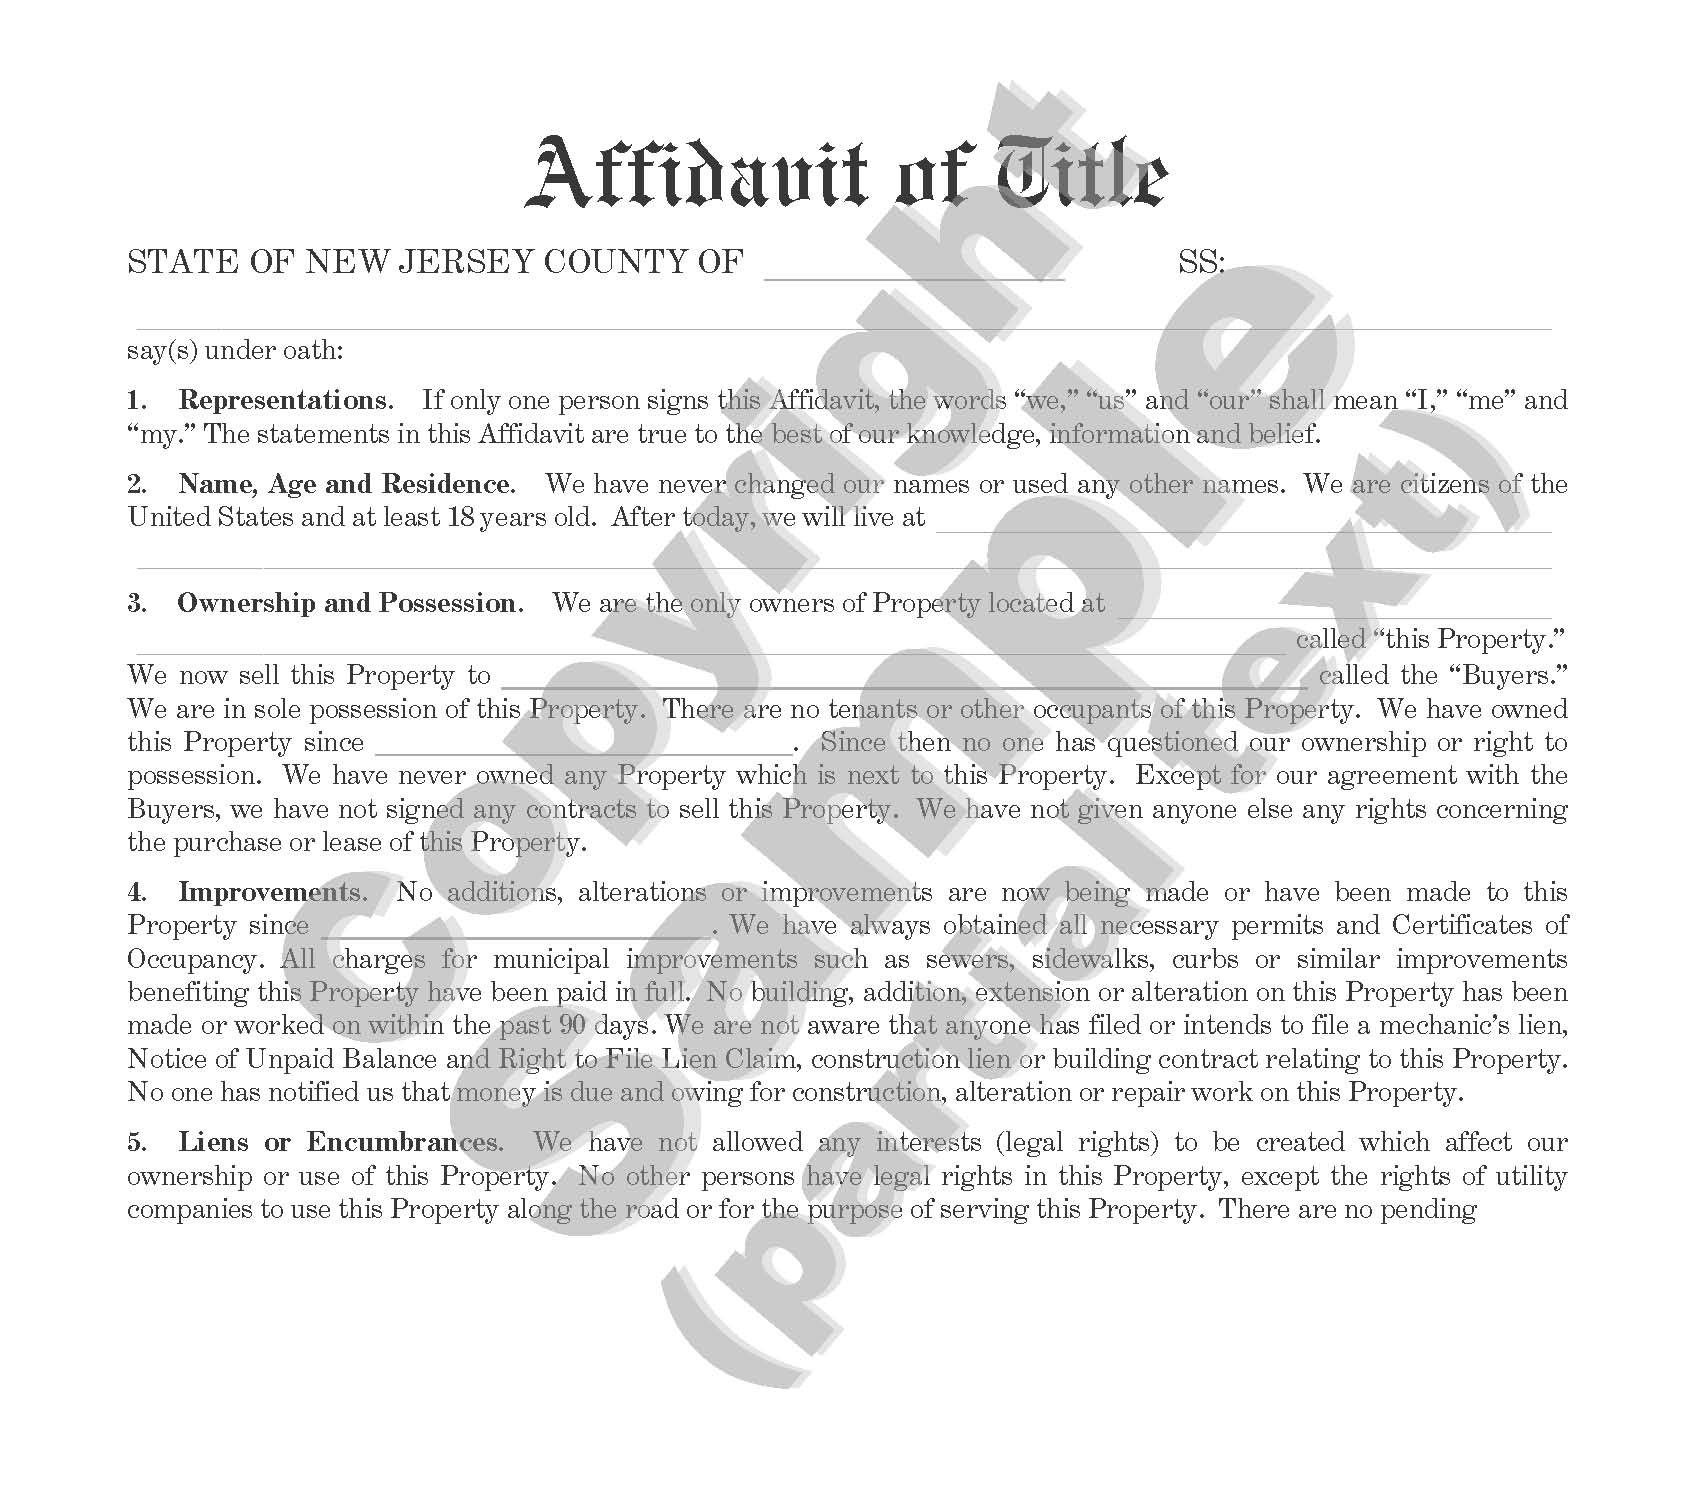 Affidavit of Title - For Sale of Property by Individual - Plain Language